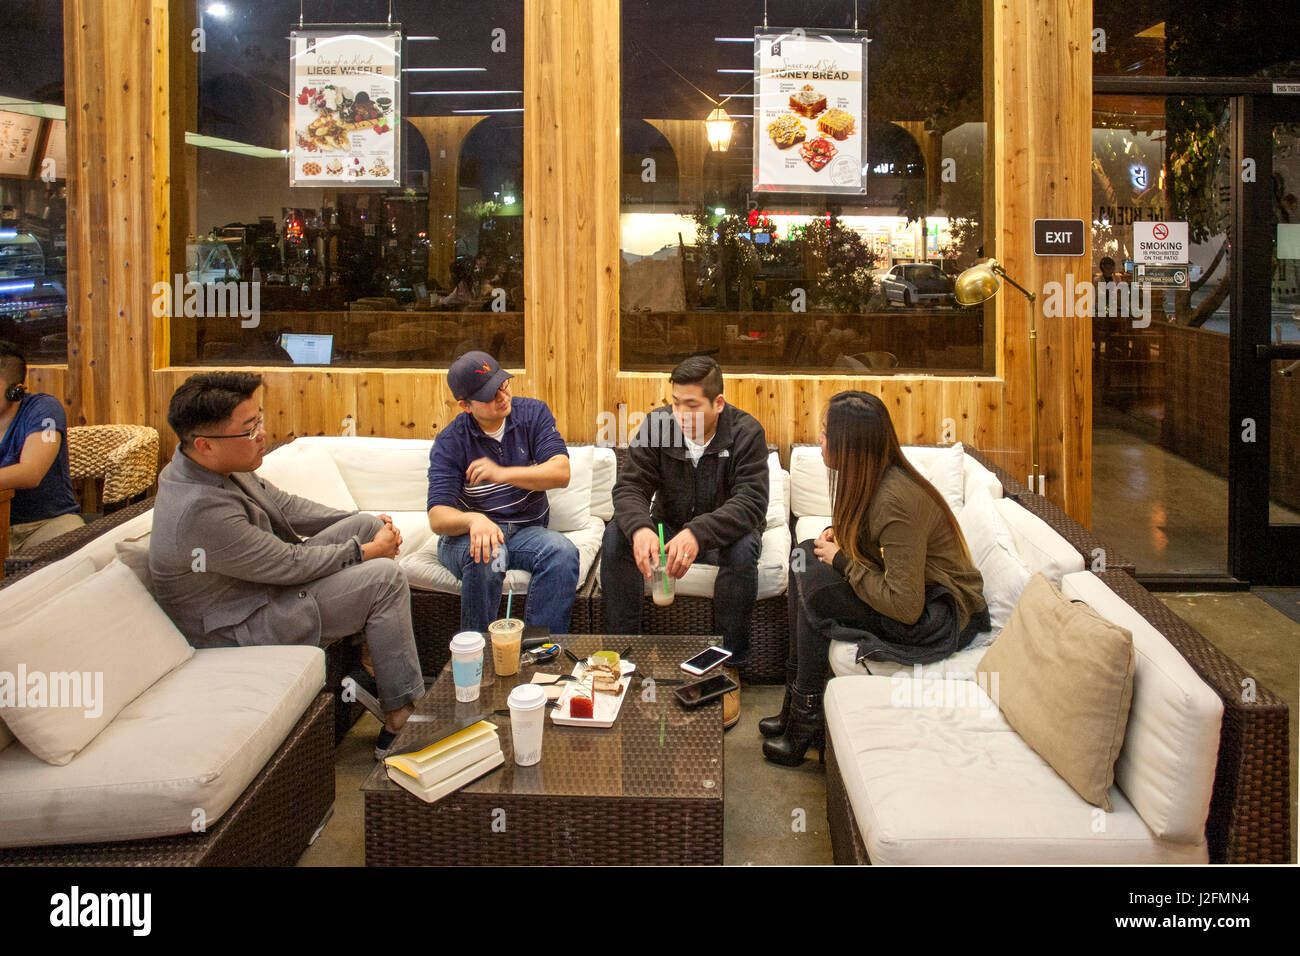 Four Asian American young adults relax on couches as they enjoy coffee and pastries at an European style cafe in - Stock Image